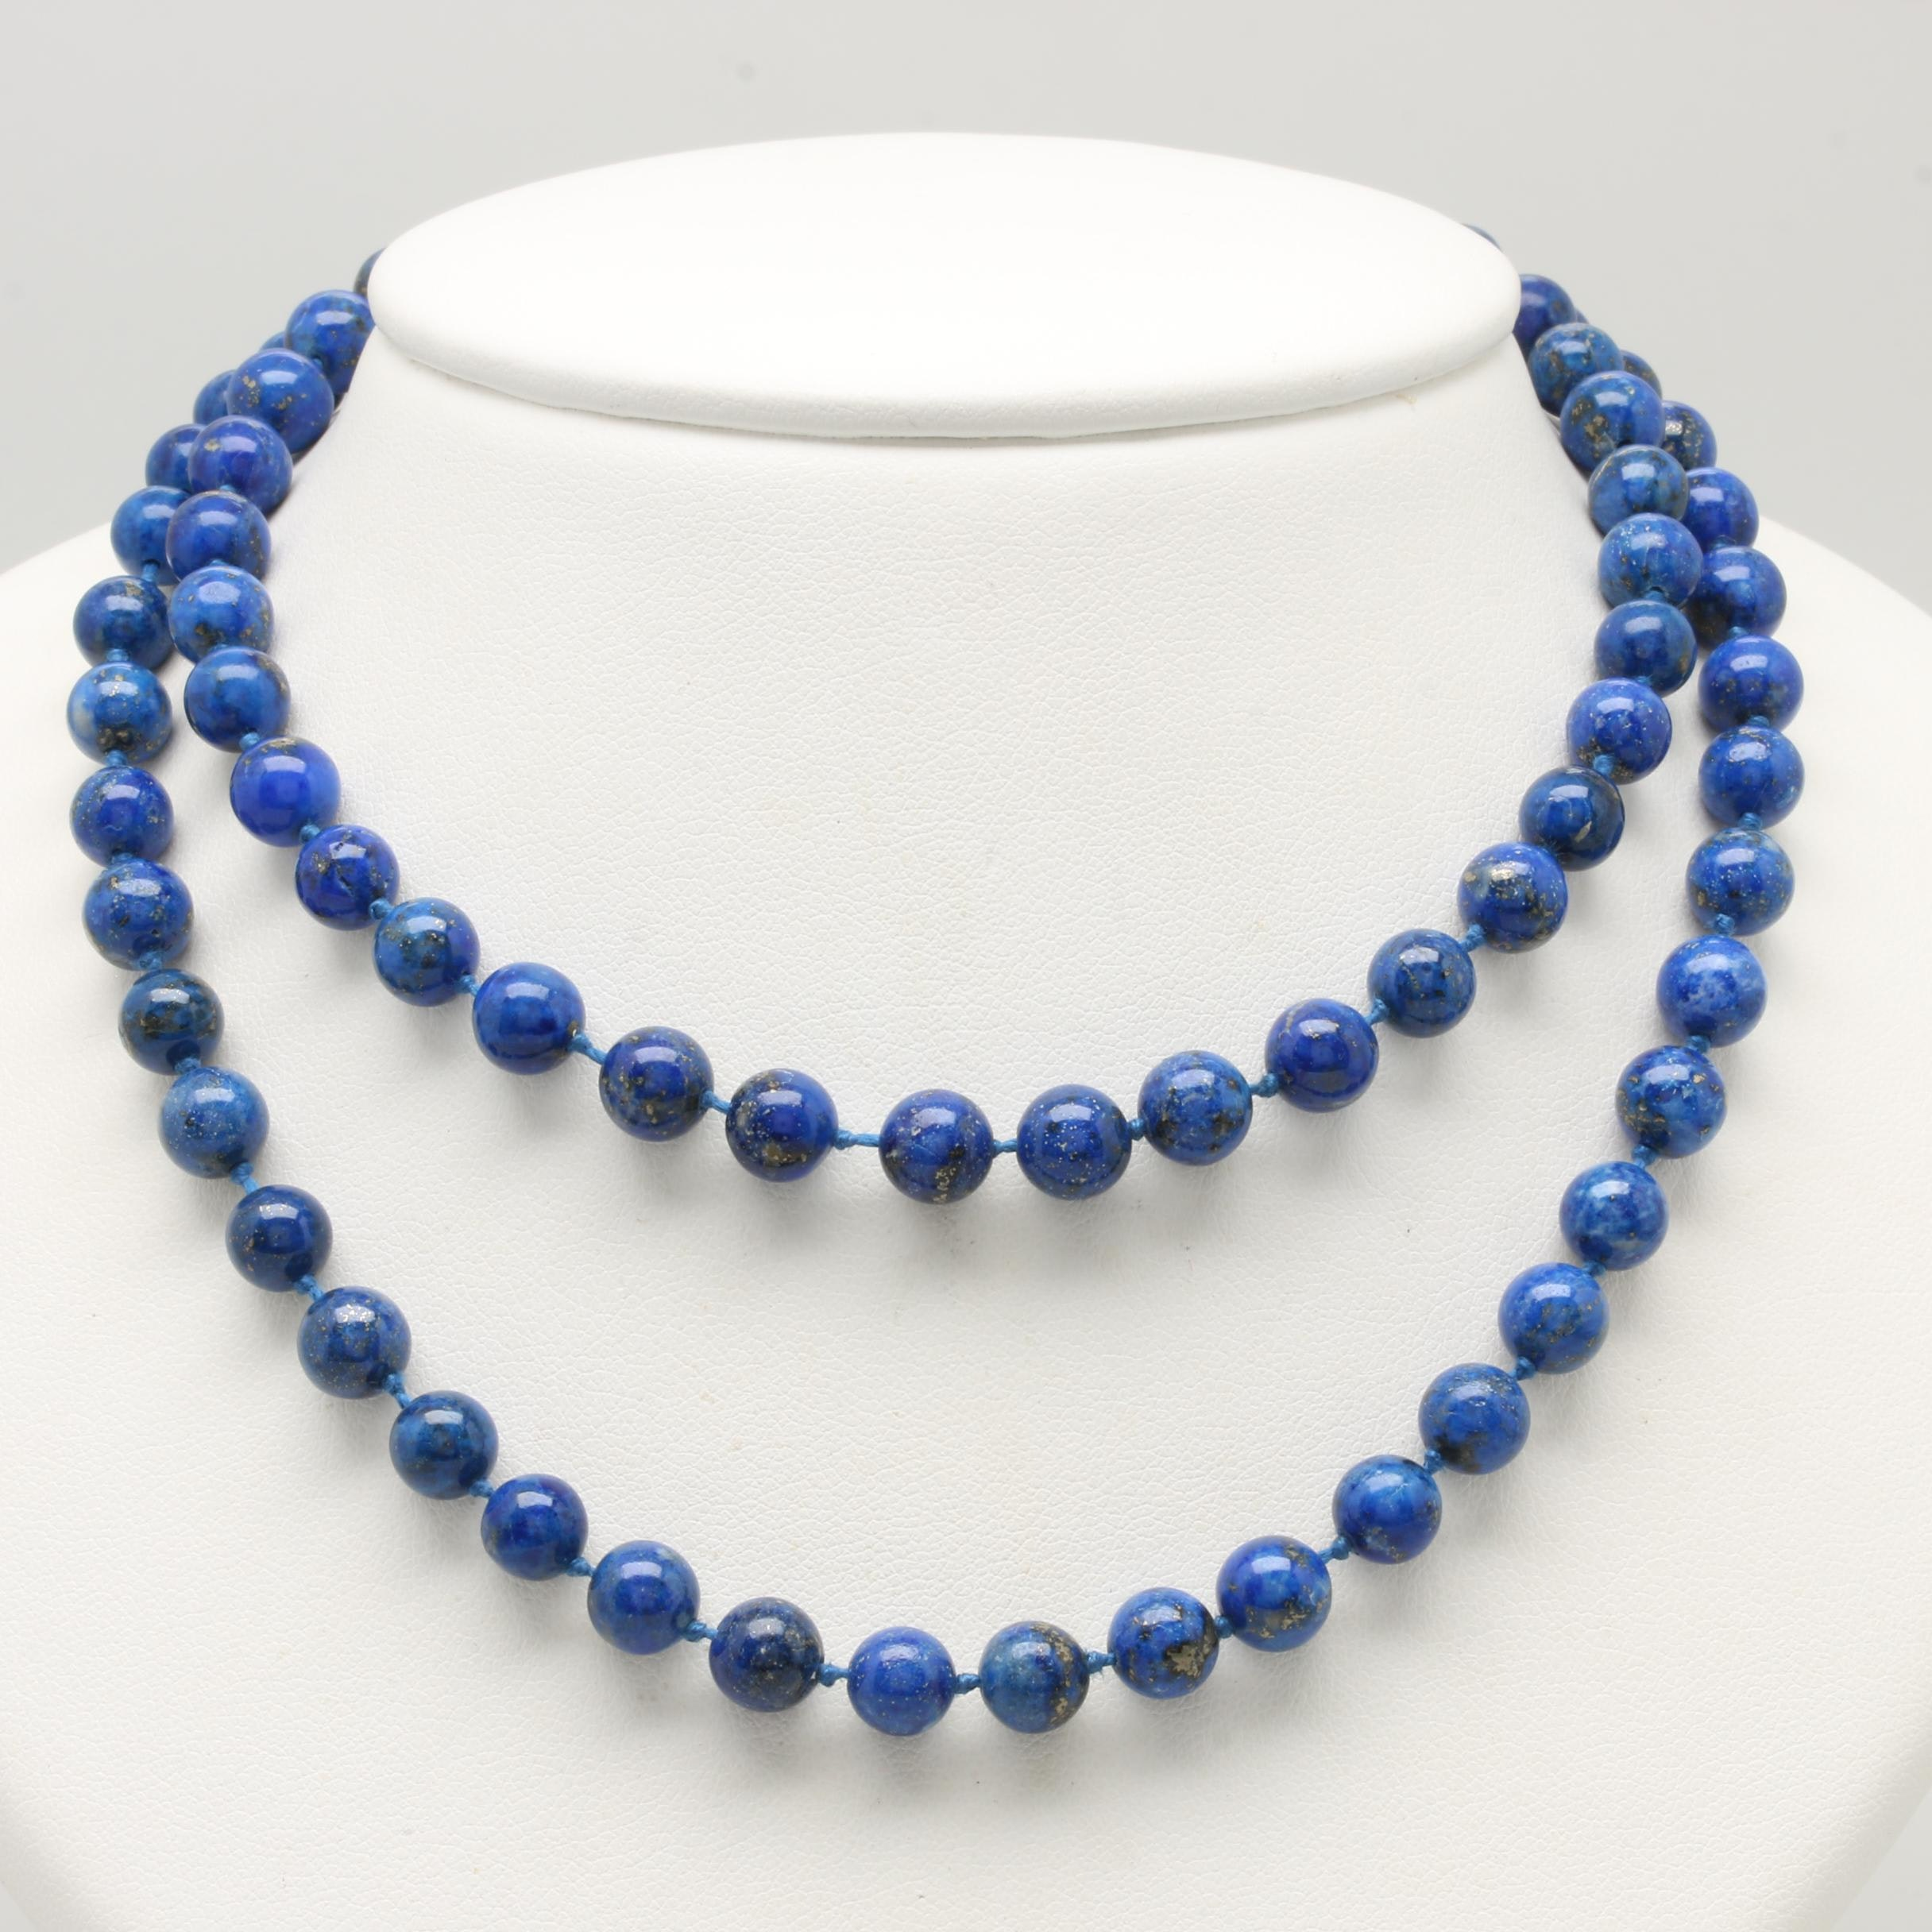 14K Yellow Gold Lapis Lazuli Bead Strand Necklace